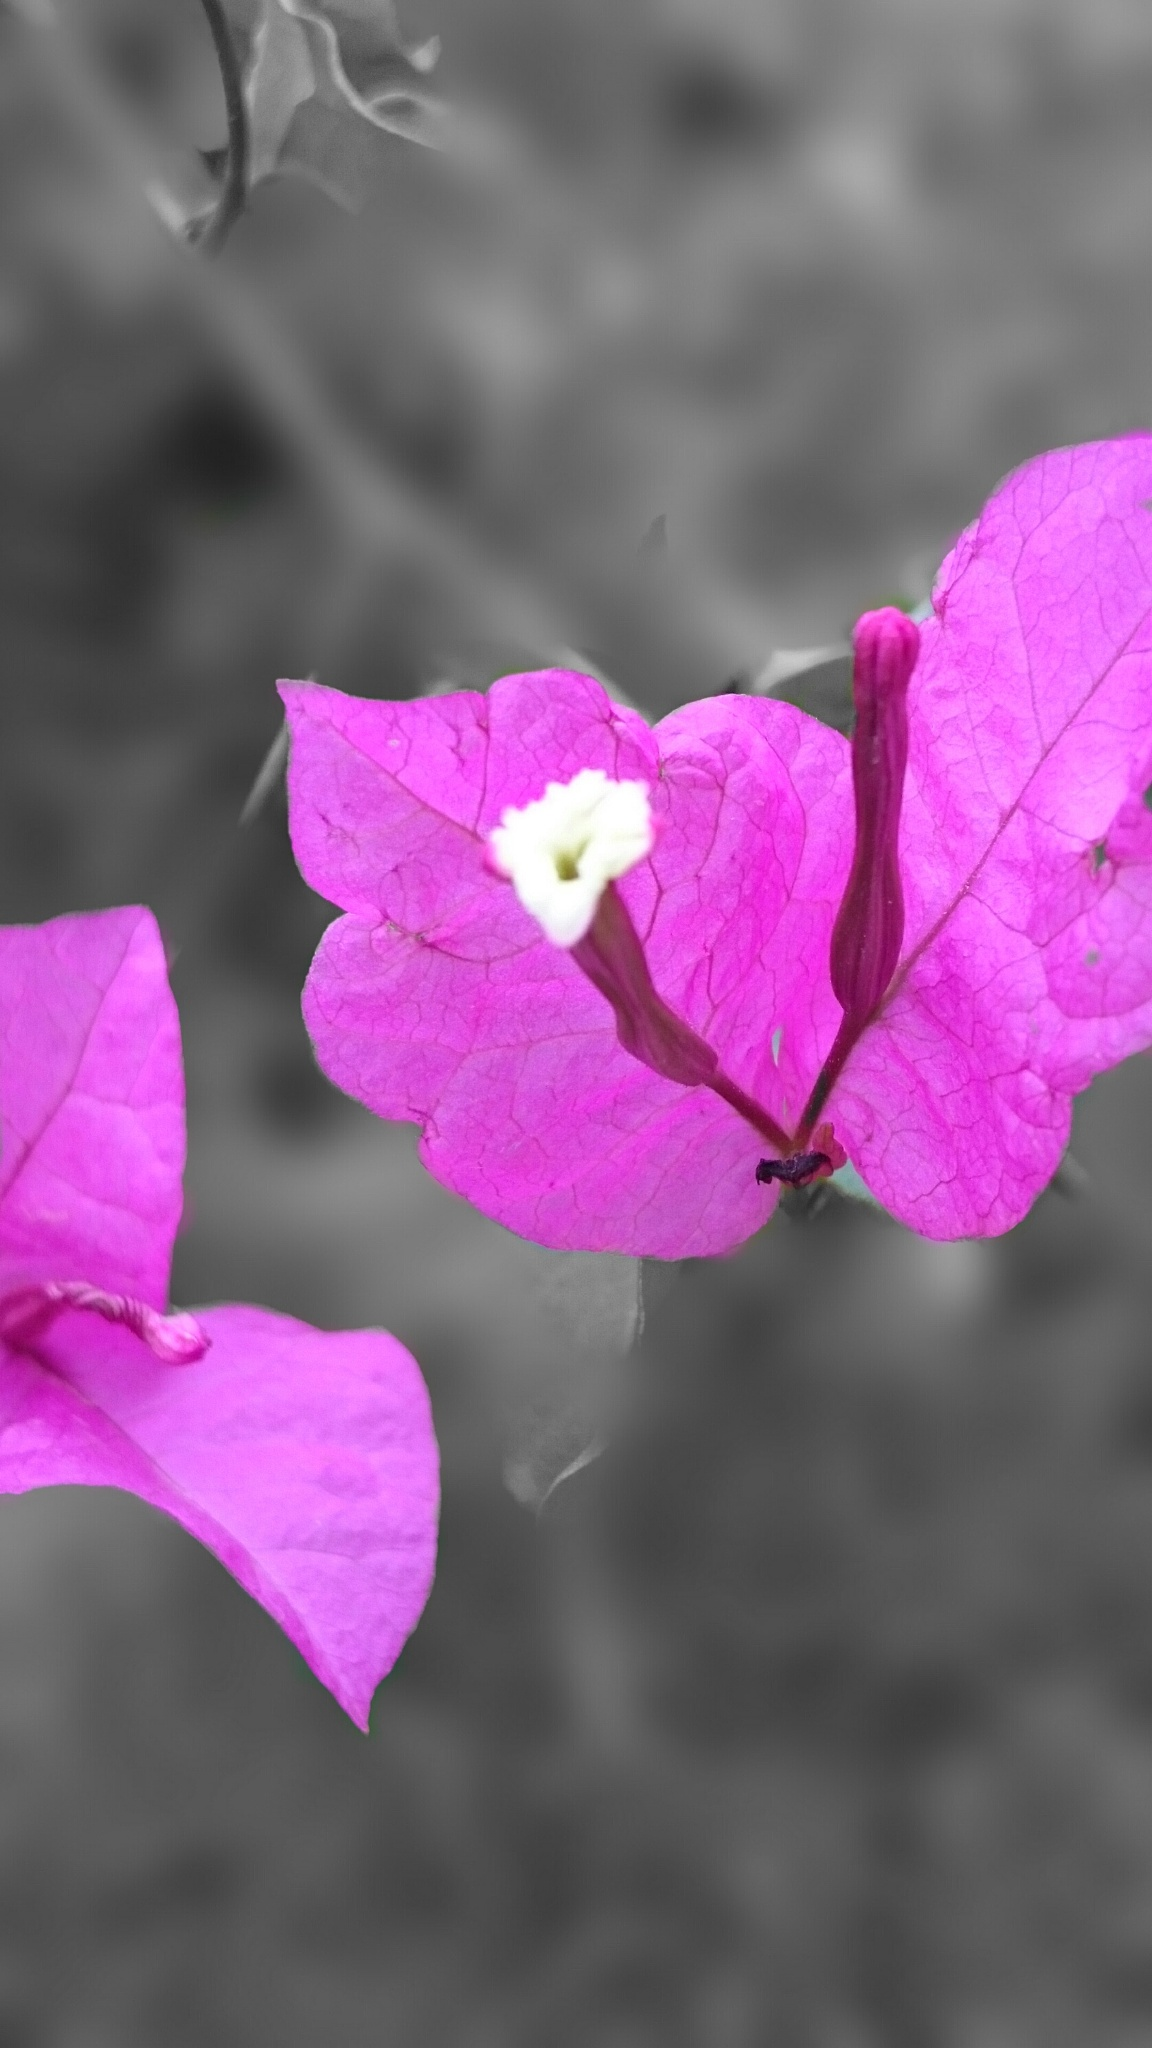 Pink Flower by Ahmad Alsayed